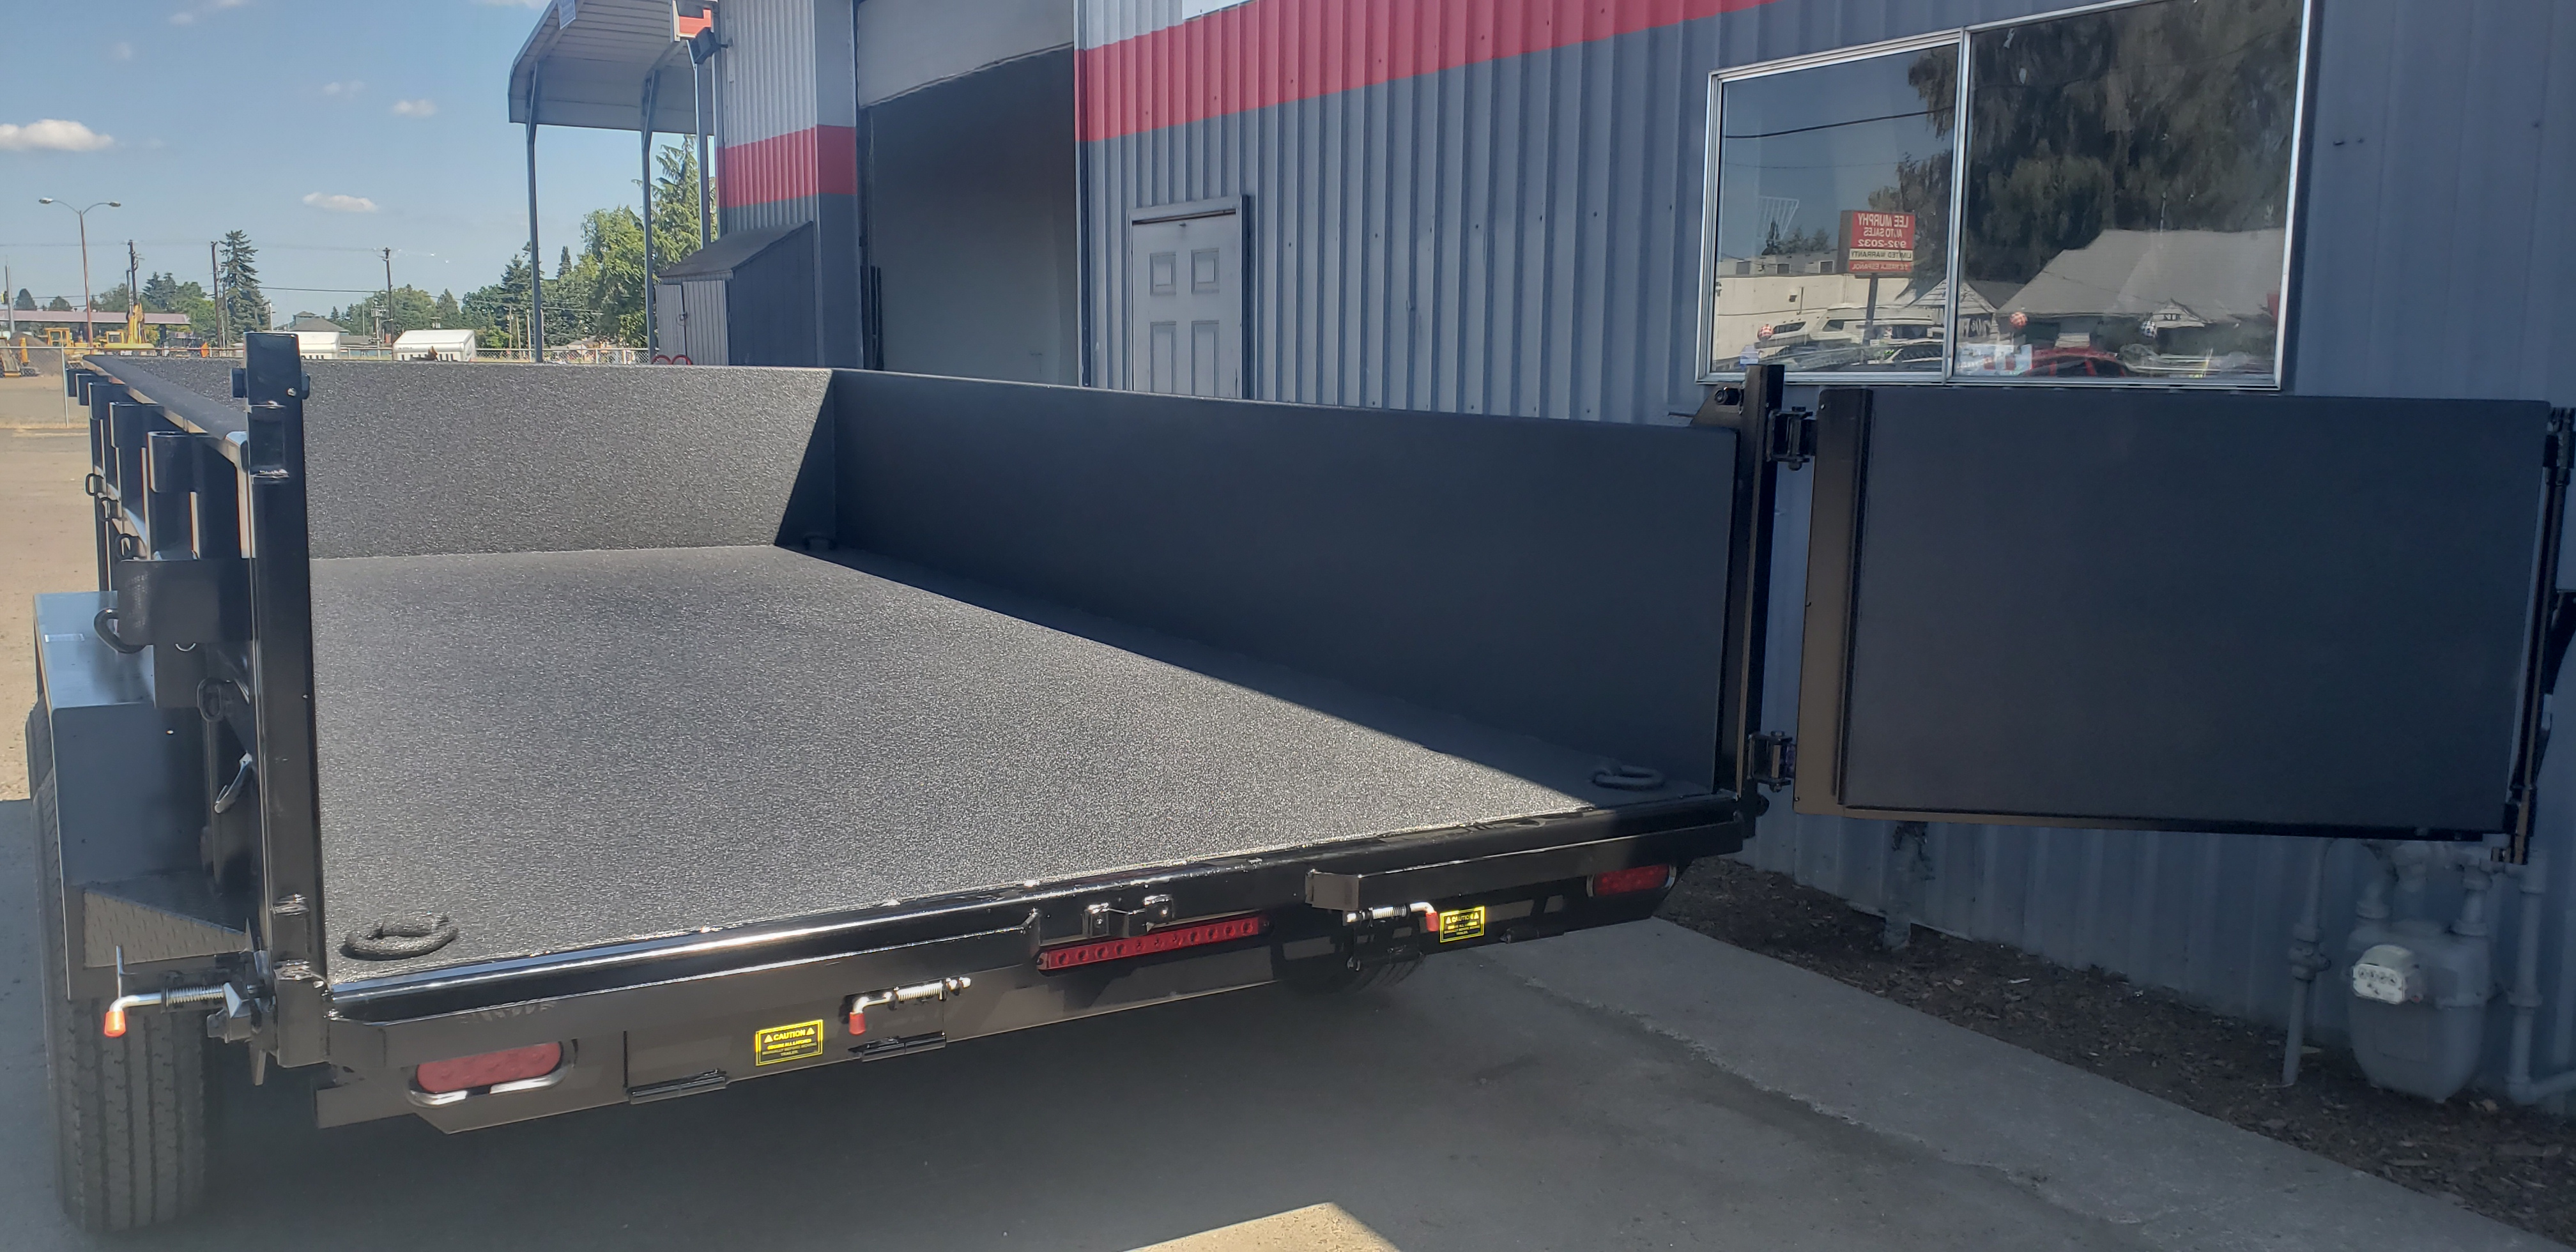 S&R Motorz provides Truck Accessories, Spray on Bedliners, Trailer hitches and installations, Window tinting, Wheels and tires